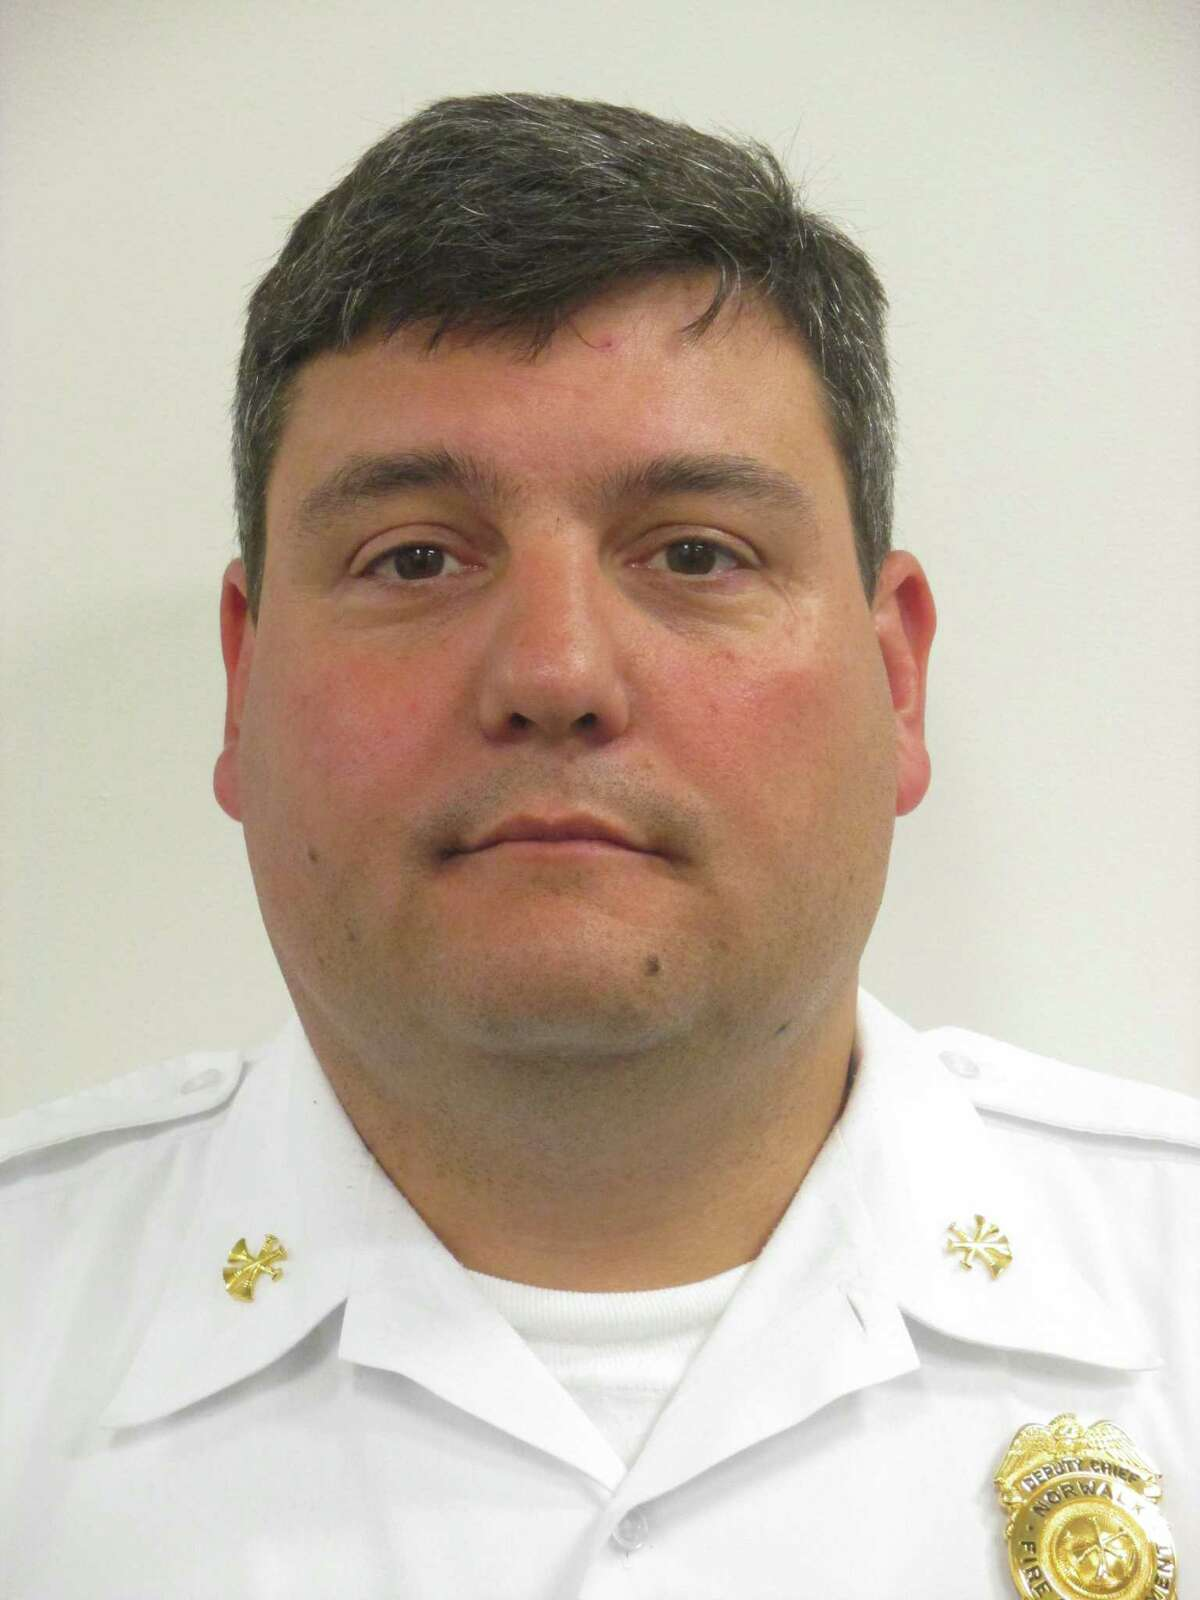 Albert Bassett has been hired to be Assistant Fire Chief for New Canaan, August 2021.